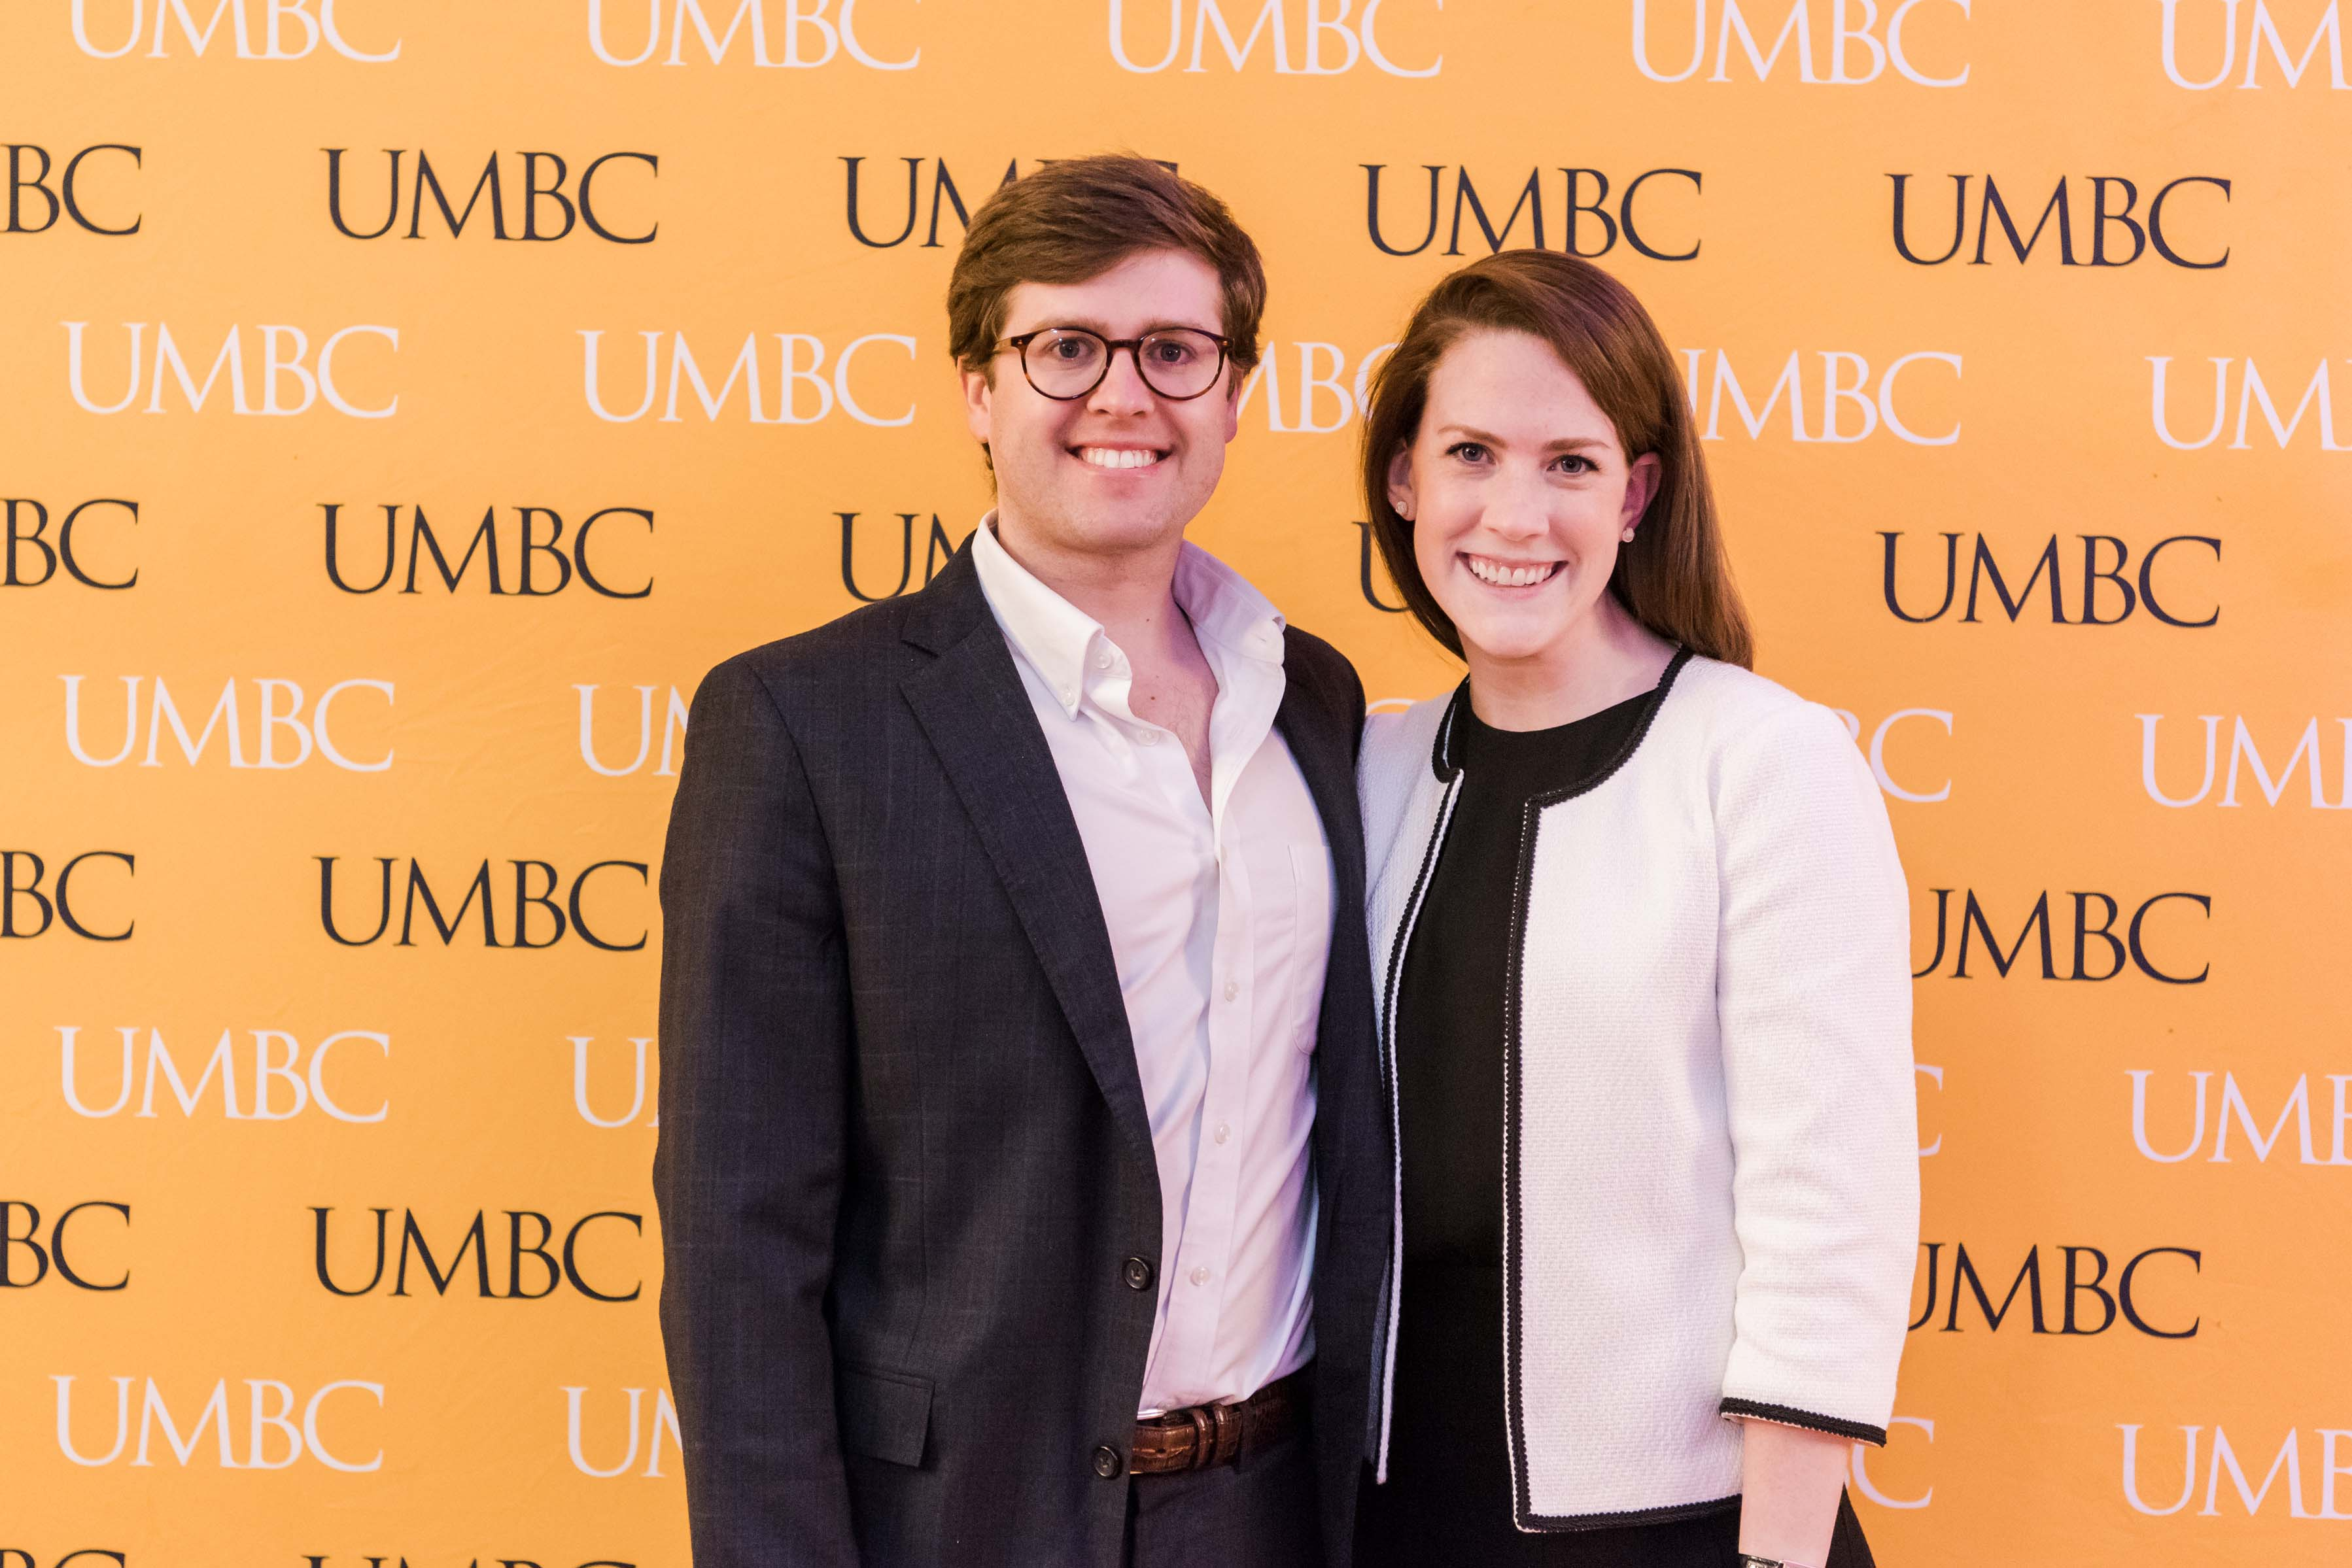 Man and woman pose for wine tasting event in front of UMBC wall